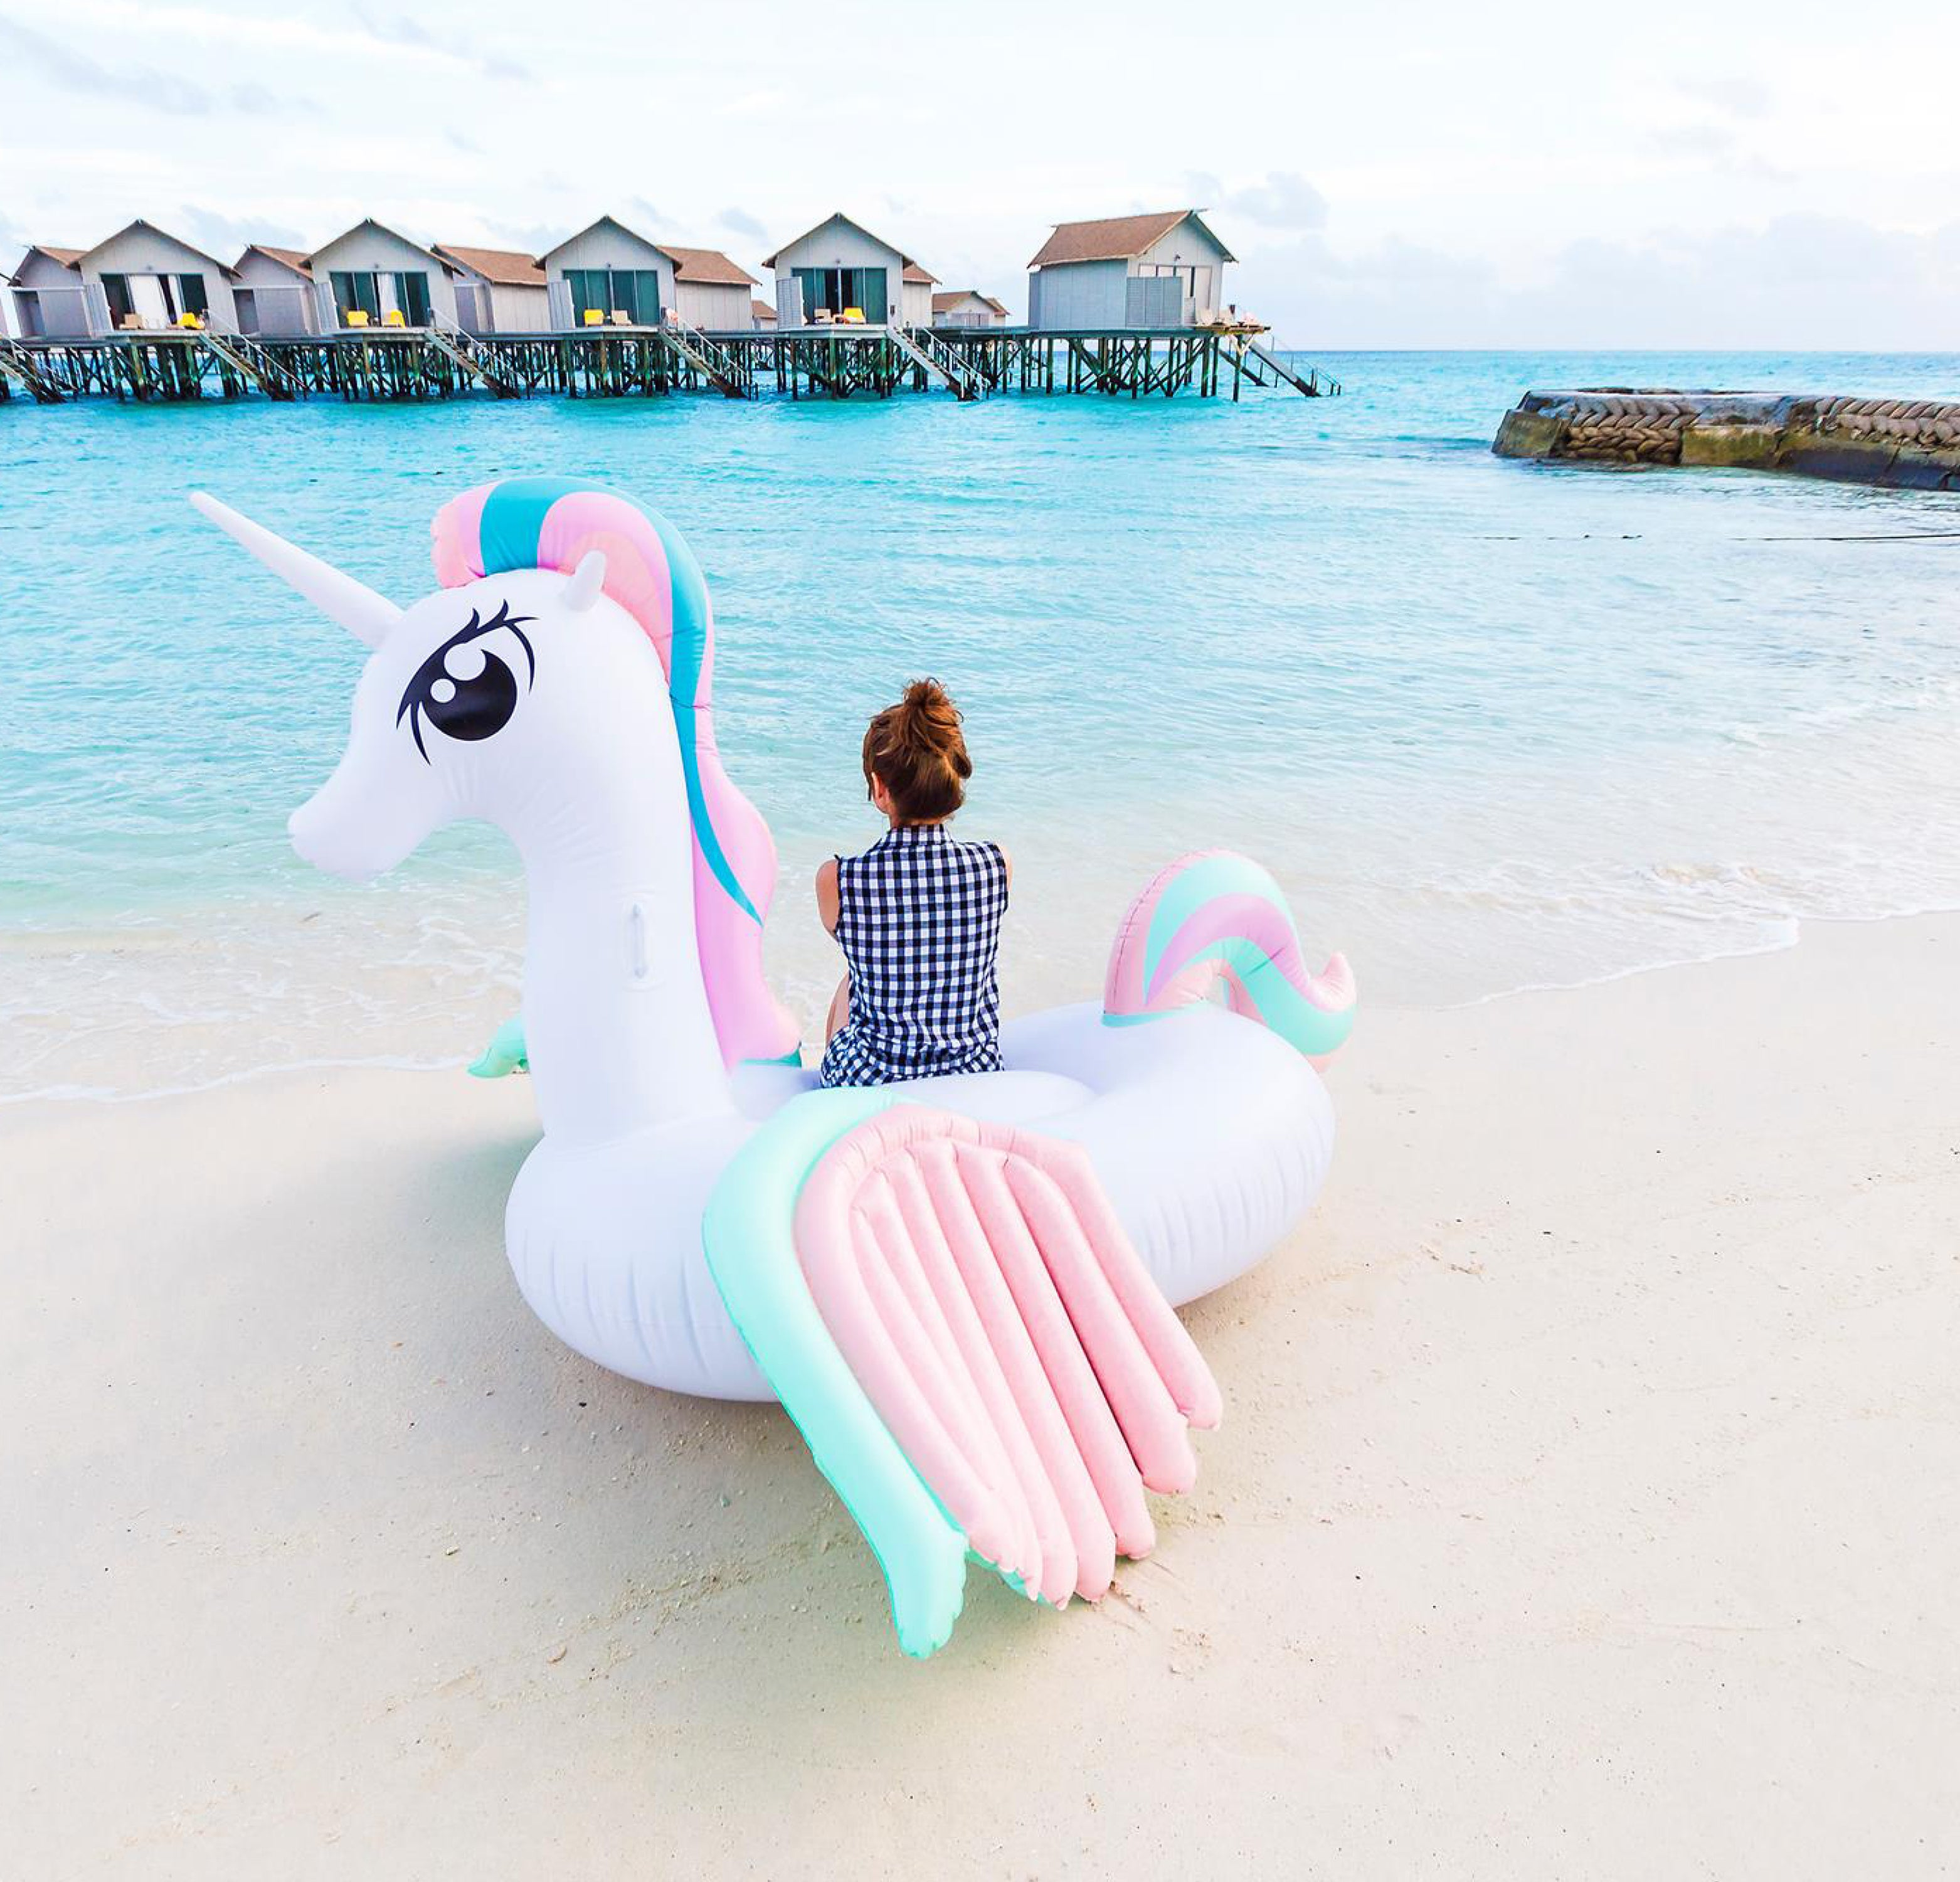 The unicorn: the trendy good luck charm for a fun and colorful summer